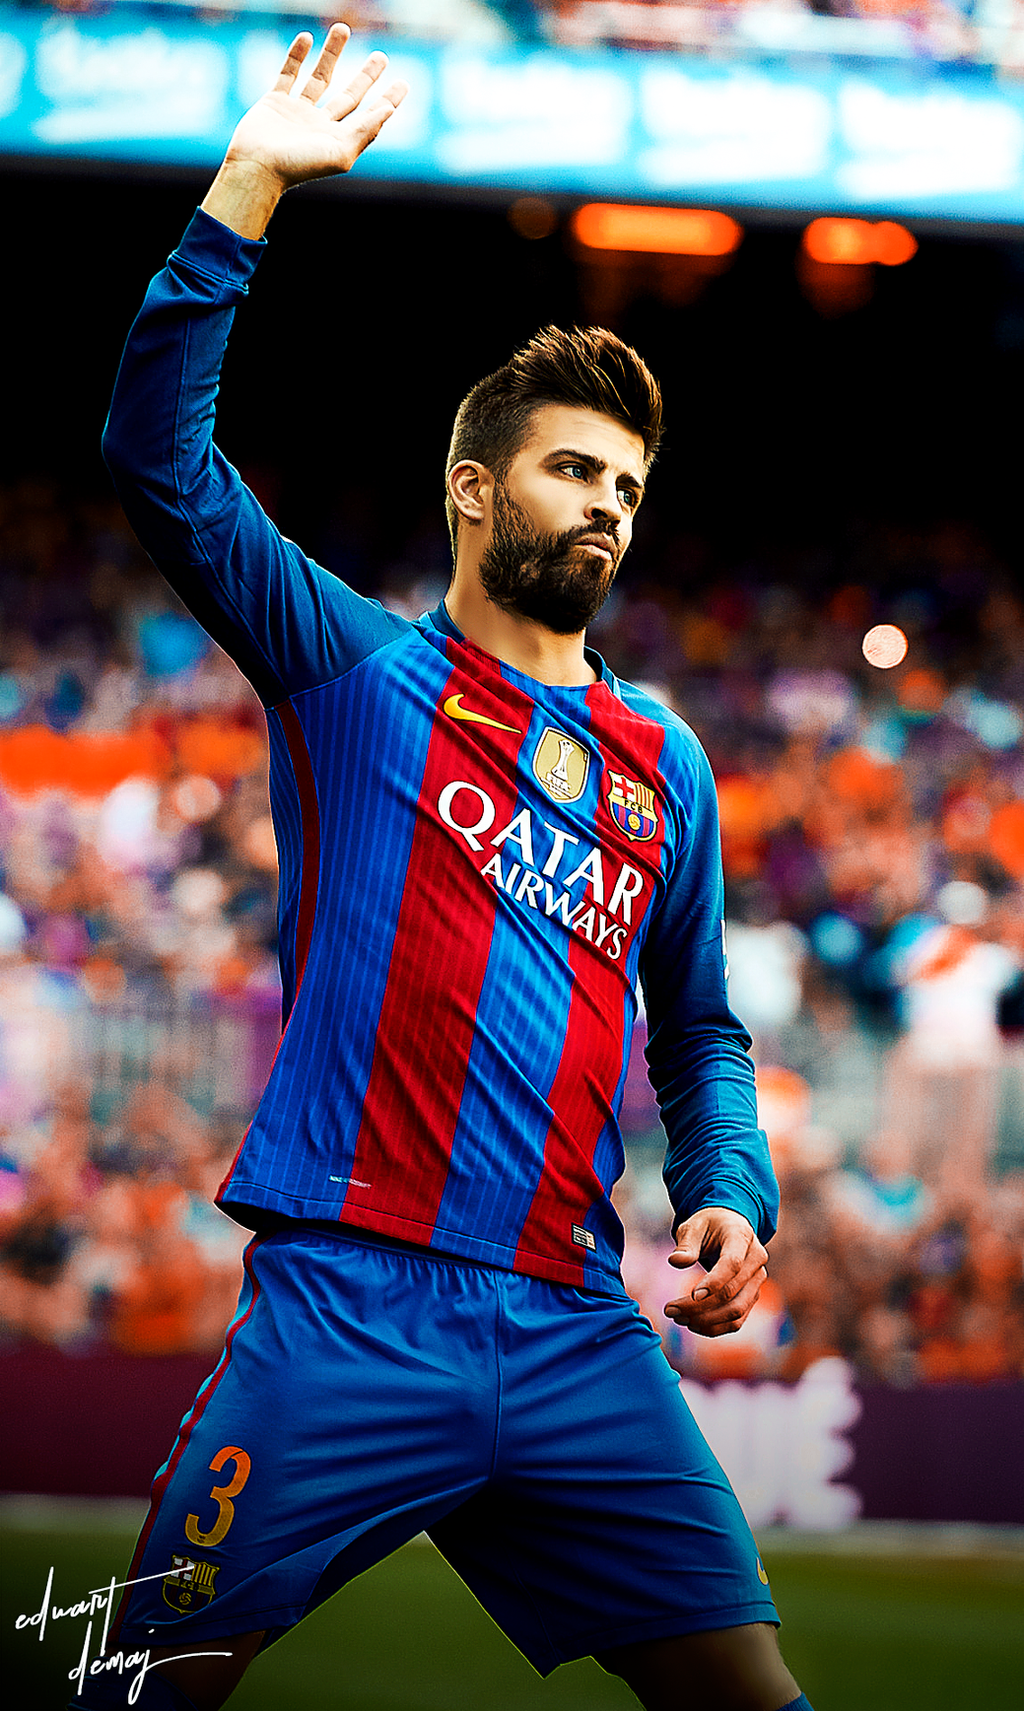 Gerard Pique Edit by Eduart03 on DeviantArt